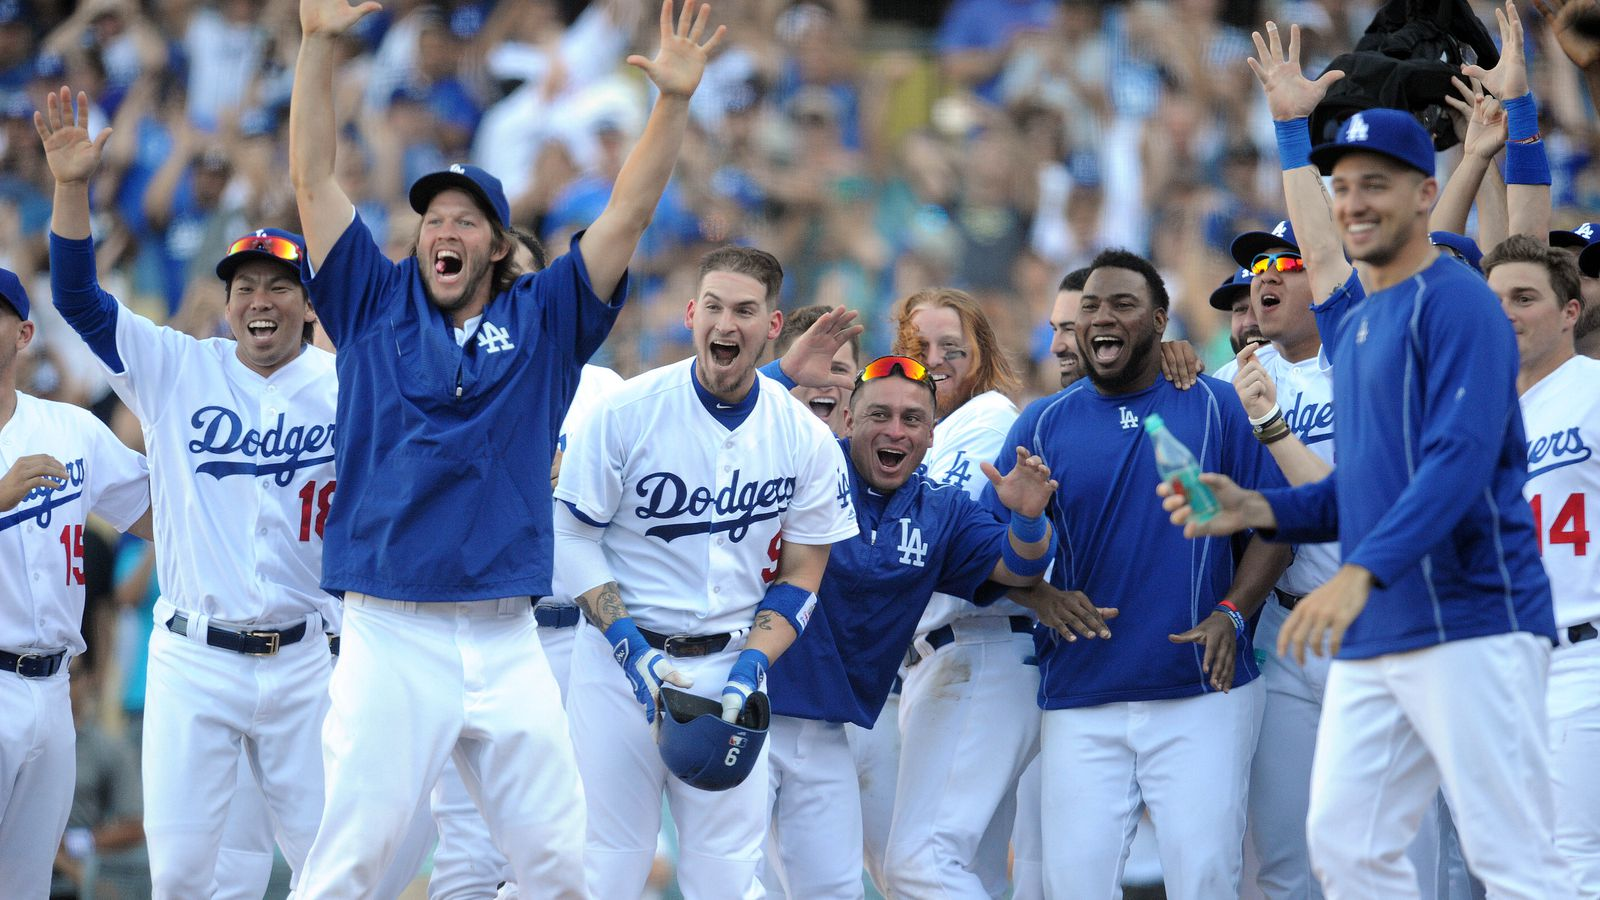 Visit ESPN to view the Los Angeles Dodgers team schedule for the current and previous seasons